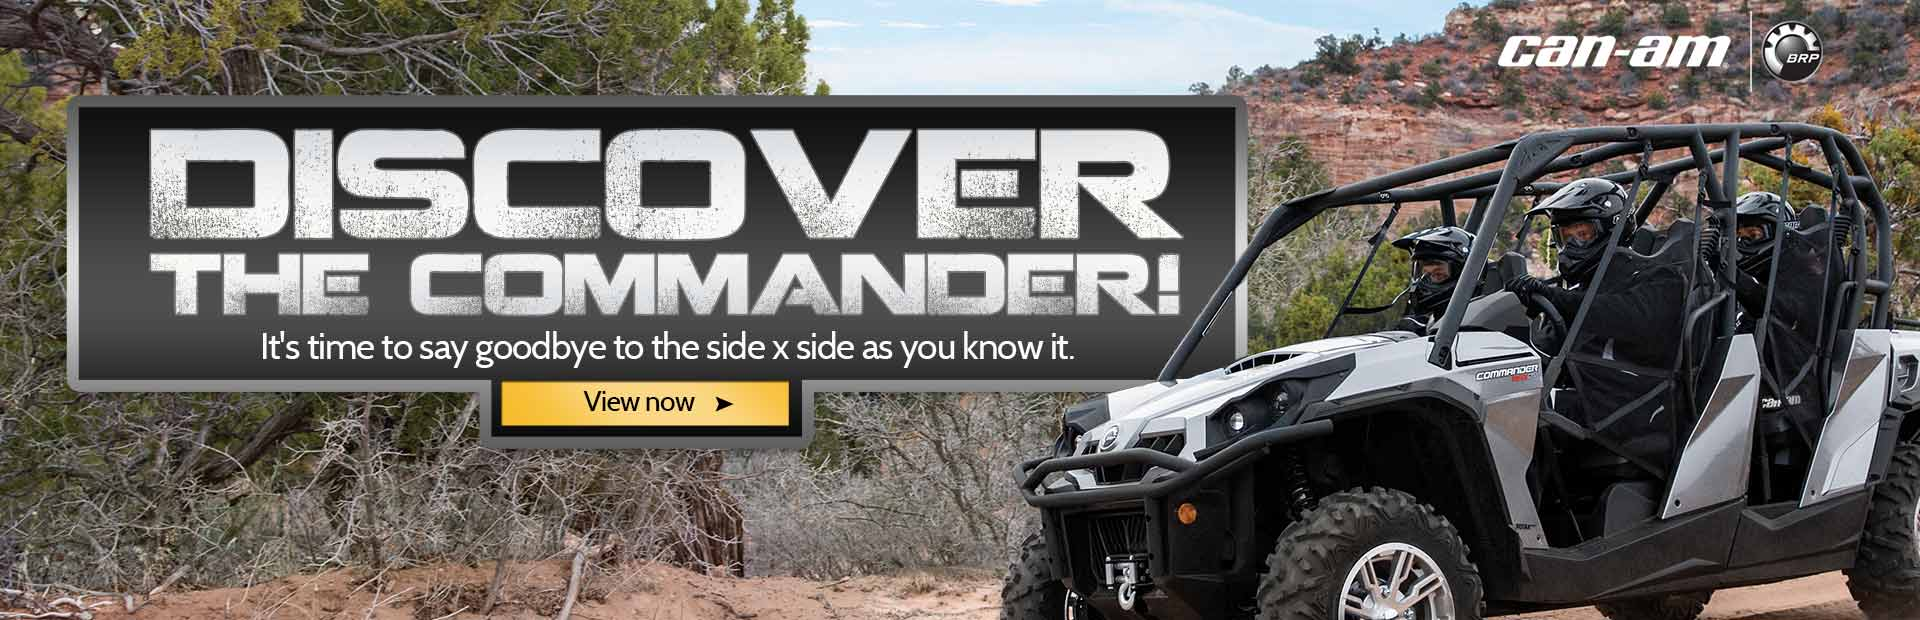 Discover the Can-Am Commander! It's time to say goodbye to the side x side as you know it. Click here to view the models.